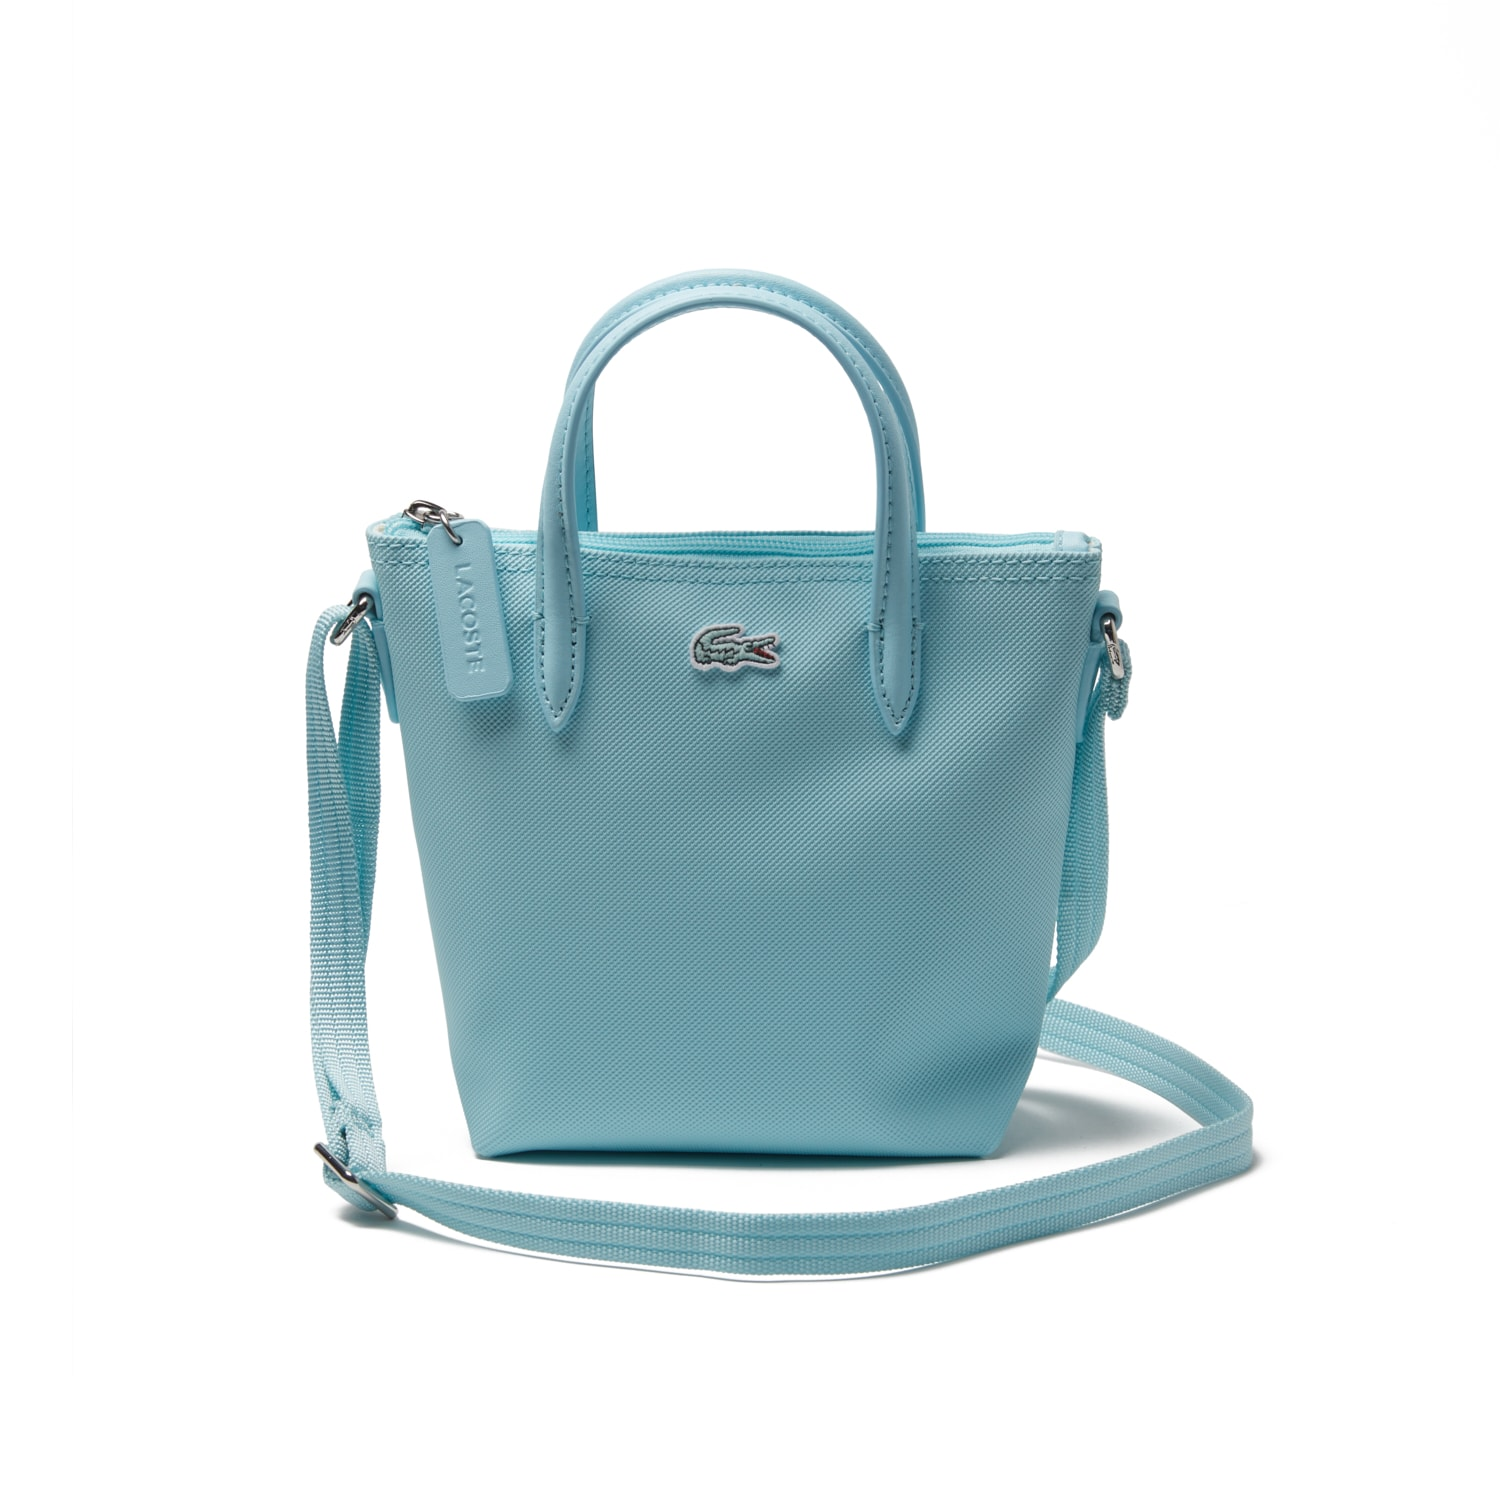 Purses and Handbags  Clutches and Totes   LACOSTE 3cc8bfda32